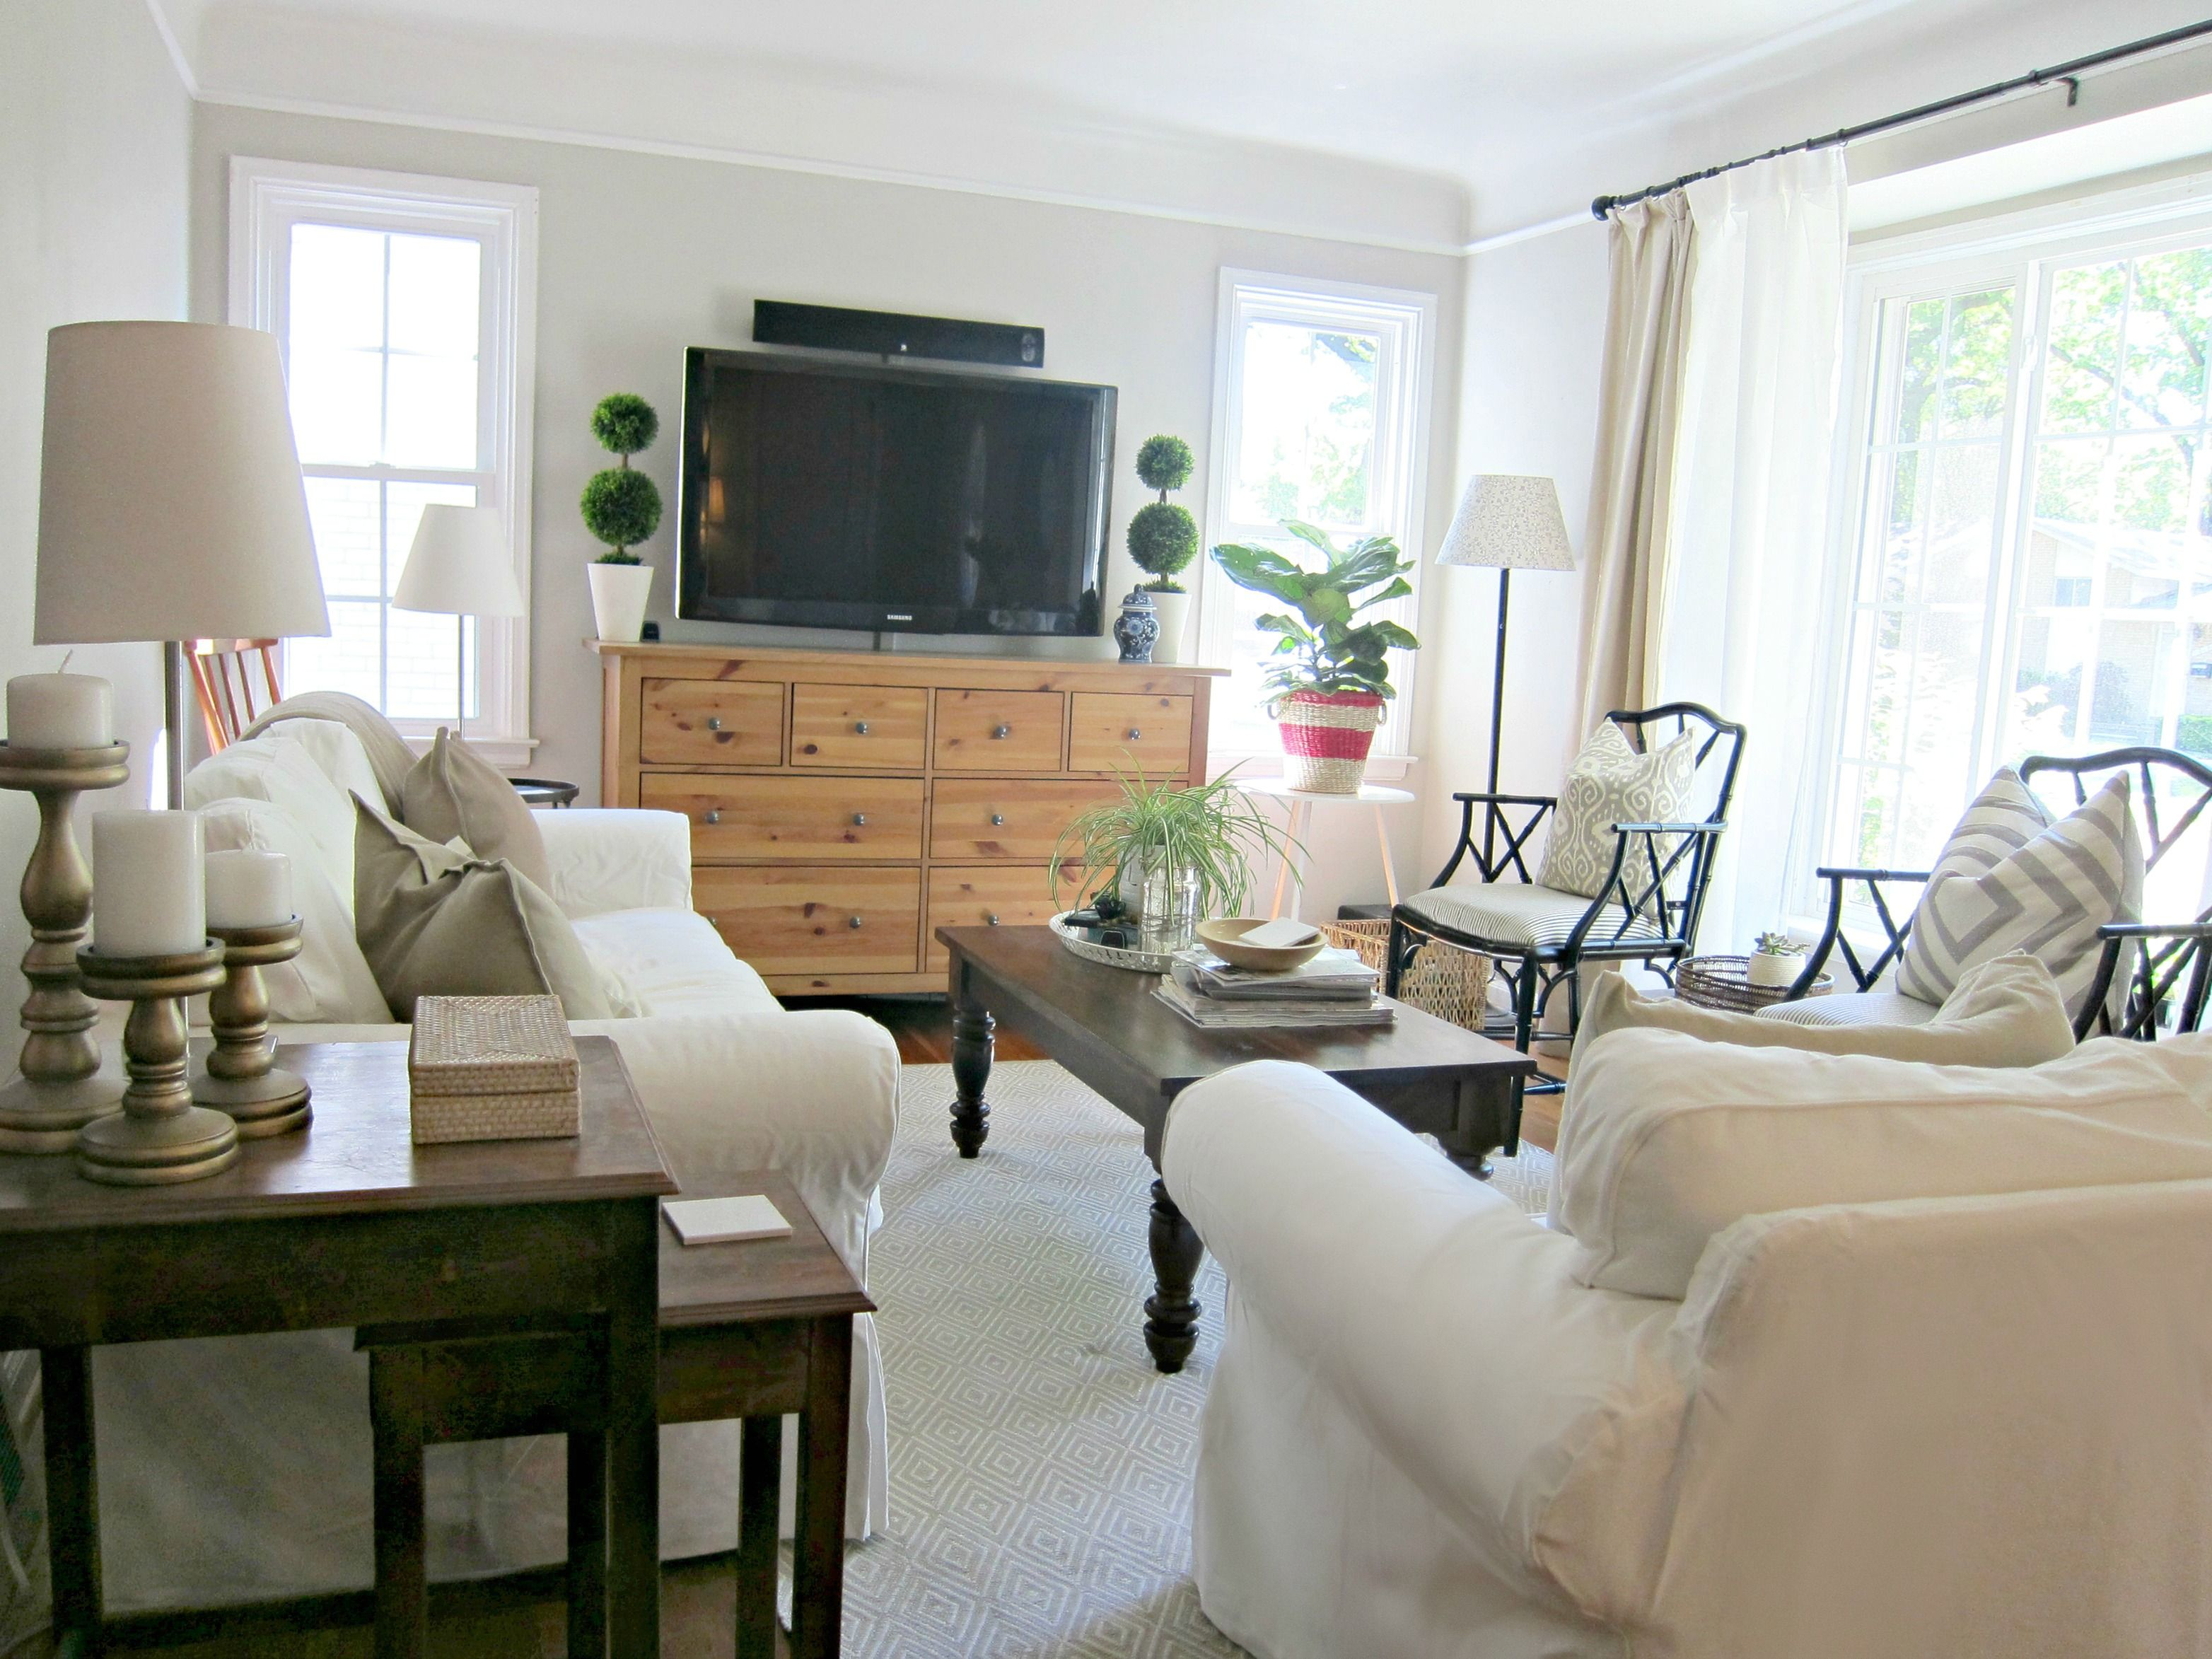 Benjamin moore cumulus cloud paint white slip covered sofa black bamboo arm chair with pinstripe fabric fiddle leaf fig plant dash albert diamond rug